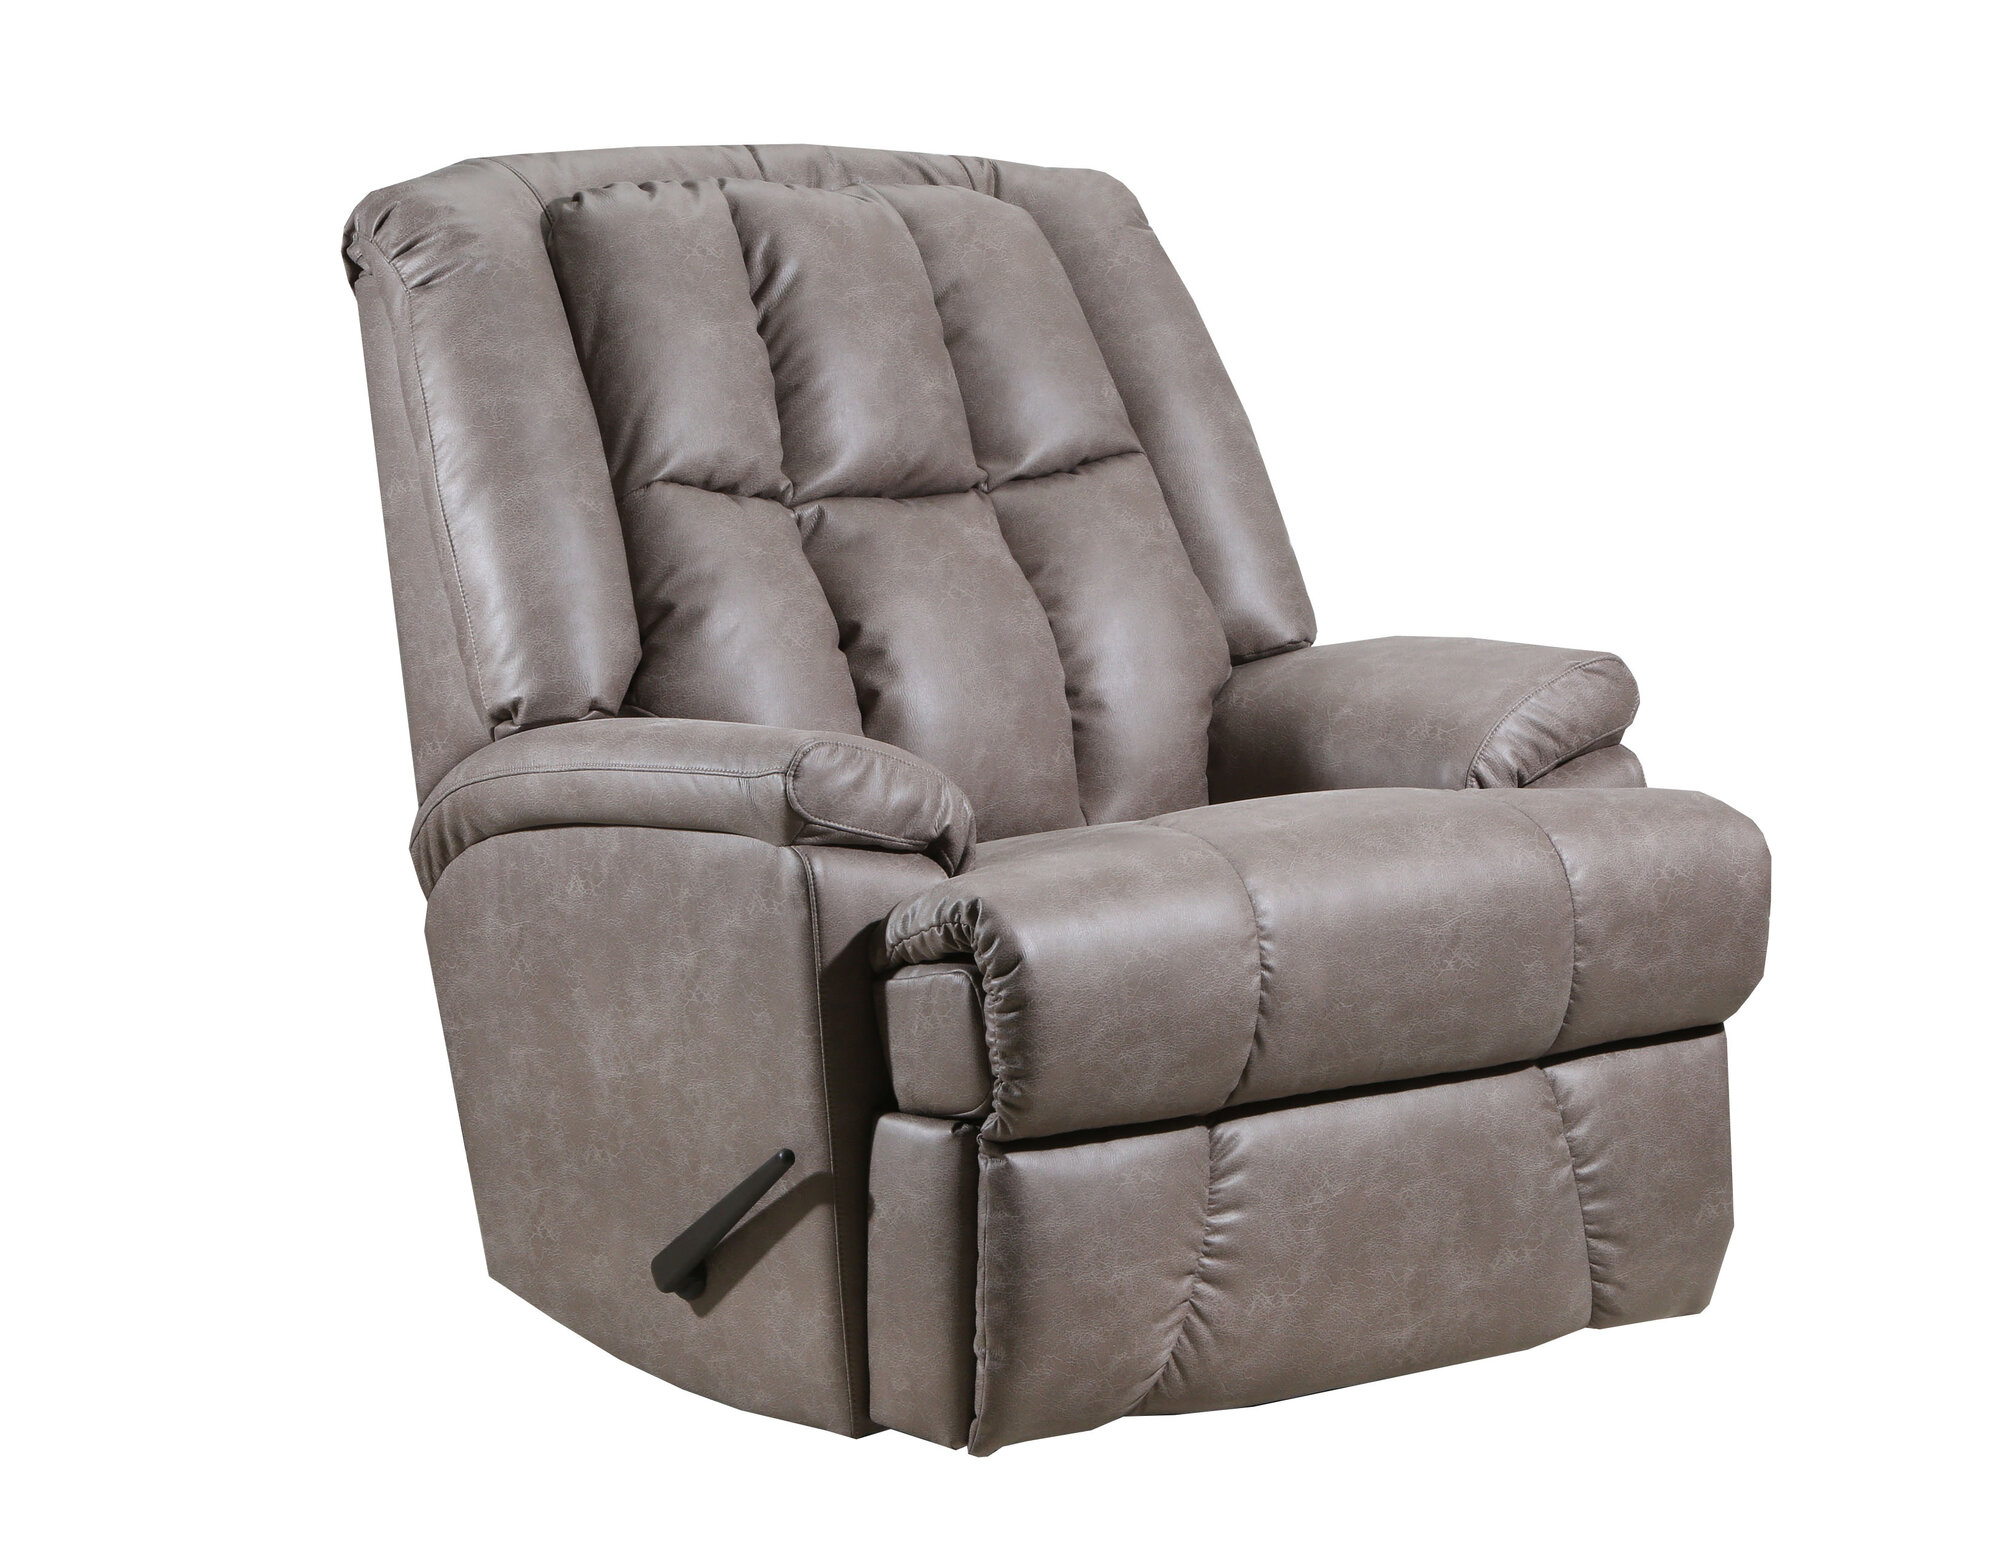 Lane Furniture Artemis Recliner Ebay